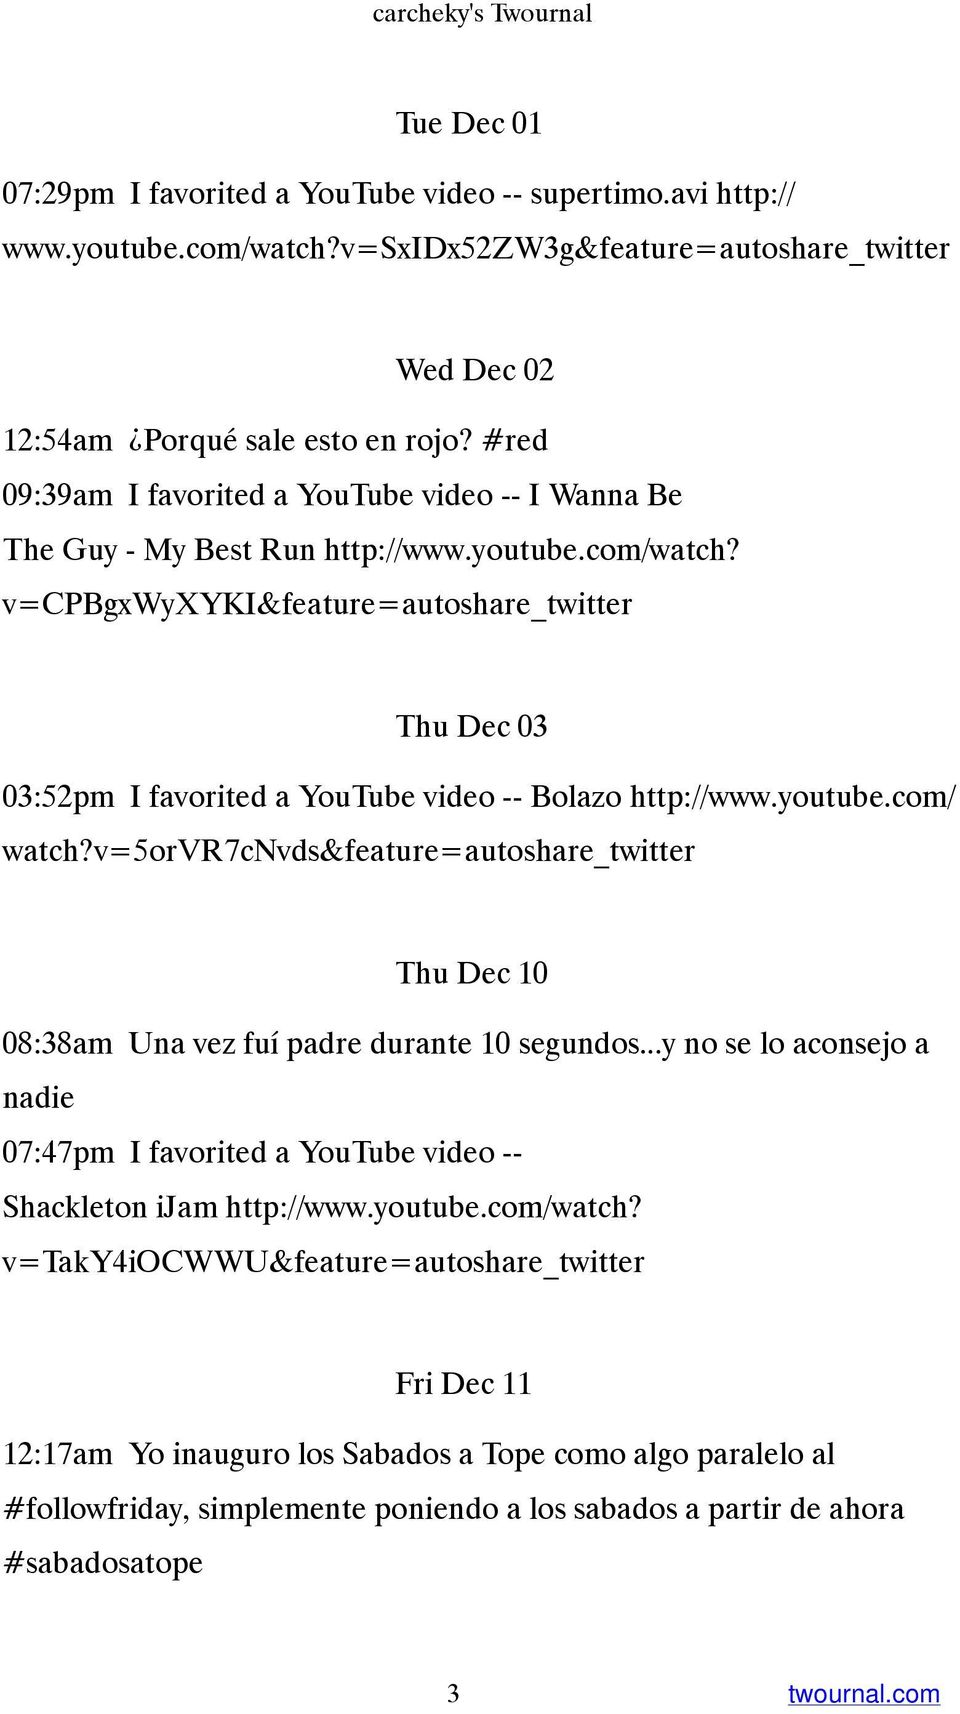 v=cpbgxwyxyki&feature=autoshare_twitter Thu Dec 03 03:52pm I favorited a YouTube video -- Bolazo http://www.youtube.com/ watch?